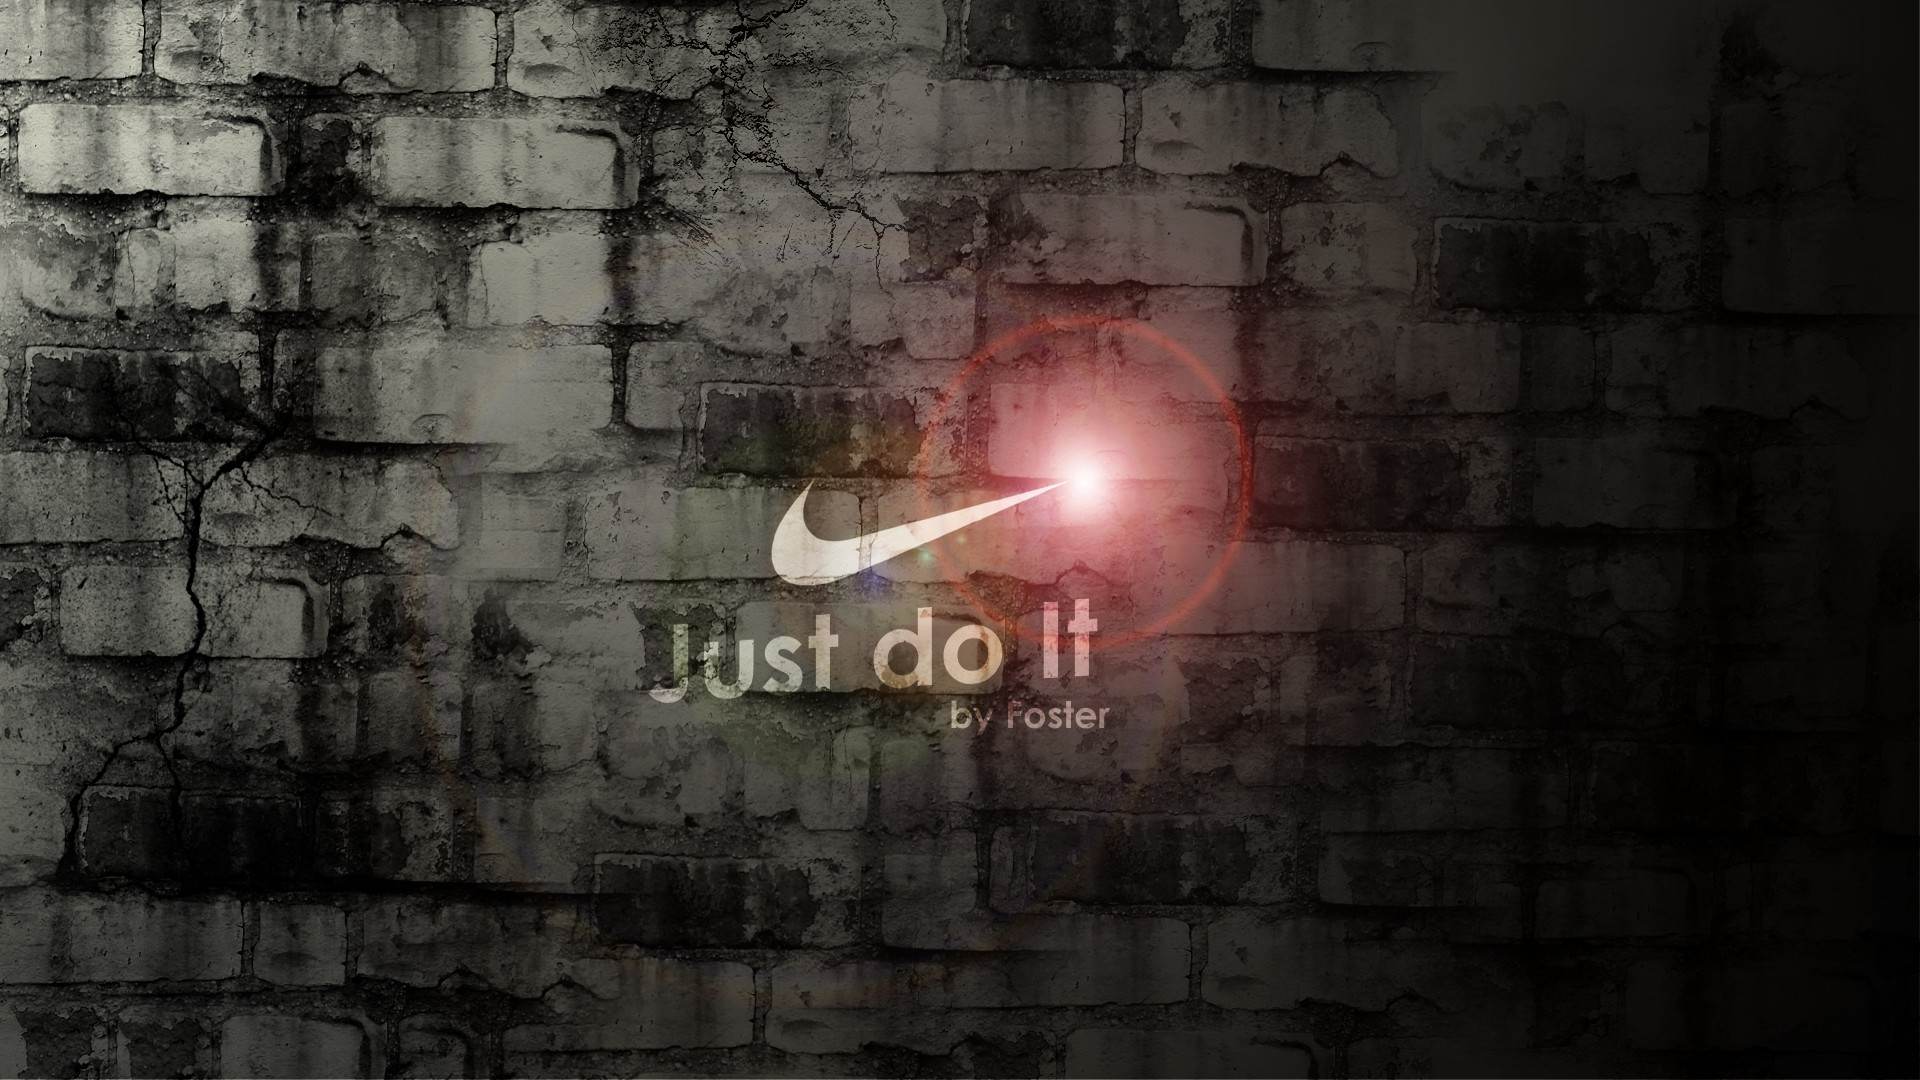 Asesinar Editor Paleto  fondo de pantalla de nike just do it para iphone - Nike solo hazlo fondo de  pantalla - 1920x1080 - WallpaperTip